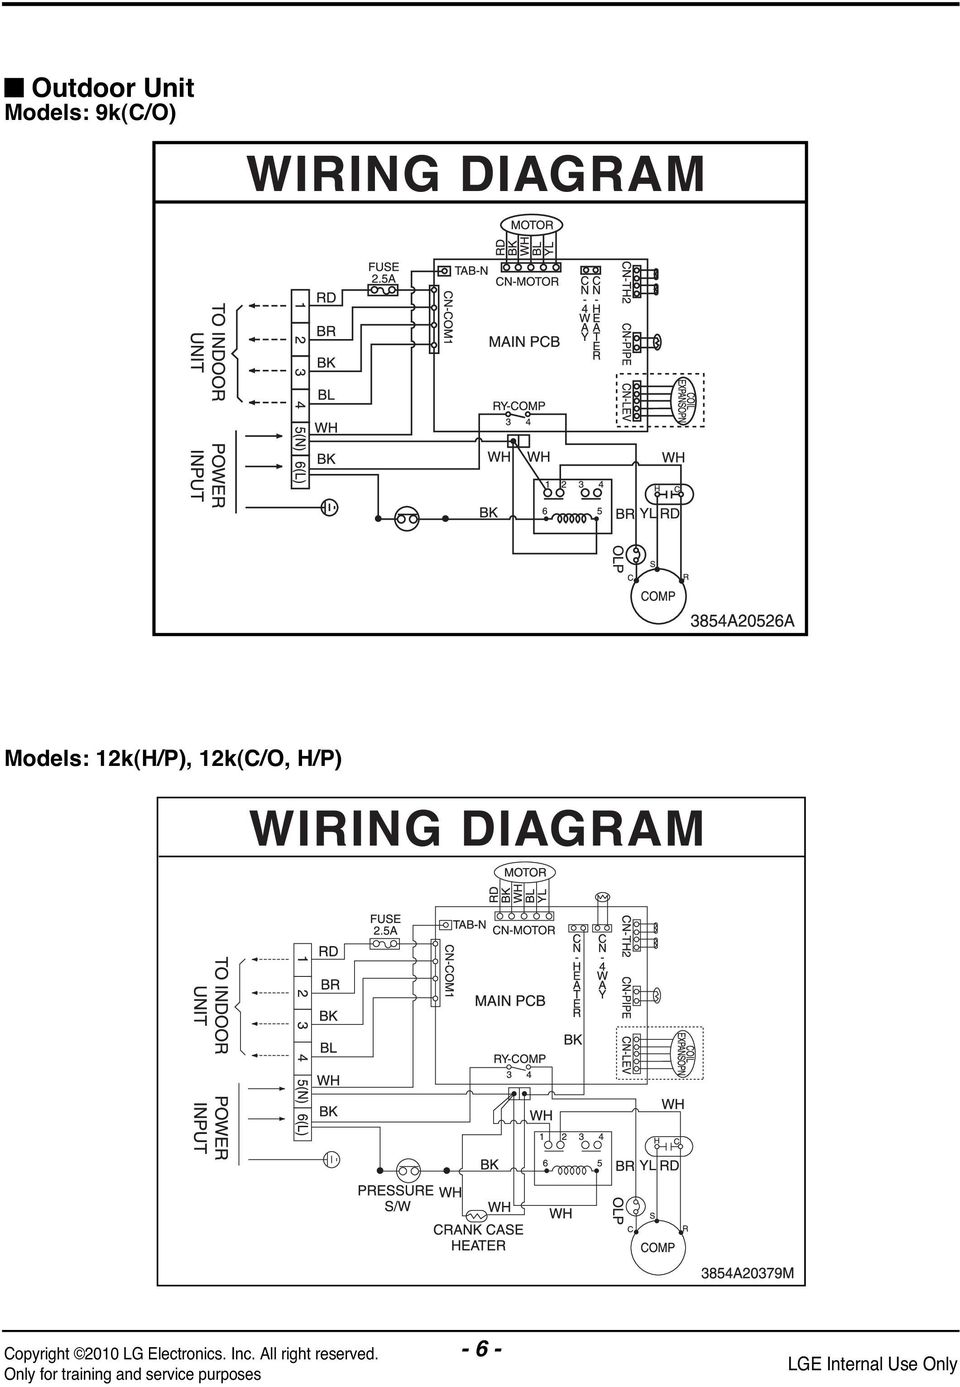 Zamil ac wiring diagram free download wiring diagram xwiaw ac plug free download wiring diagram room air conditioner svc manual exploded view pdf of zamil ac asfbconference2016 Gallery